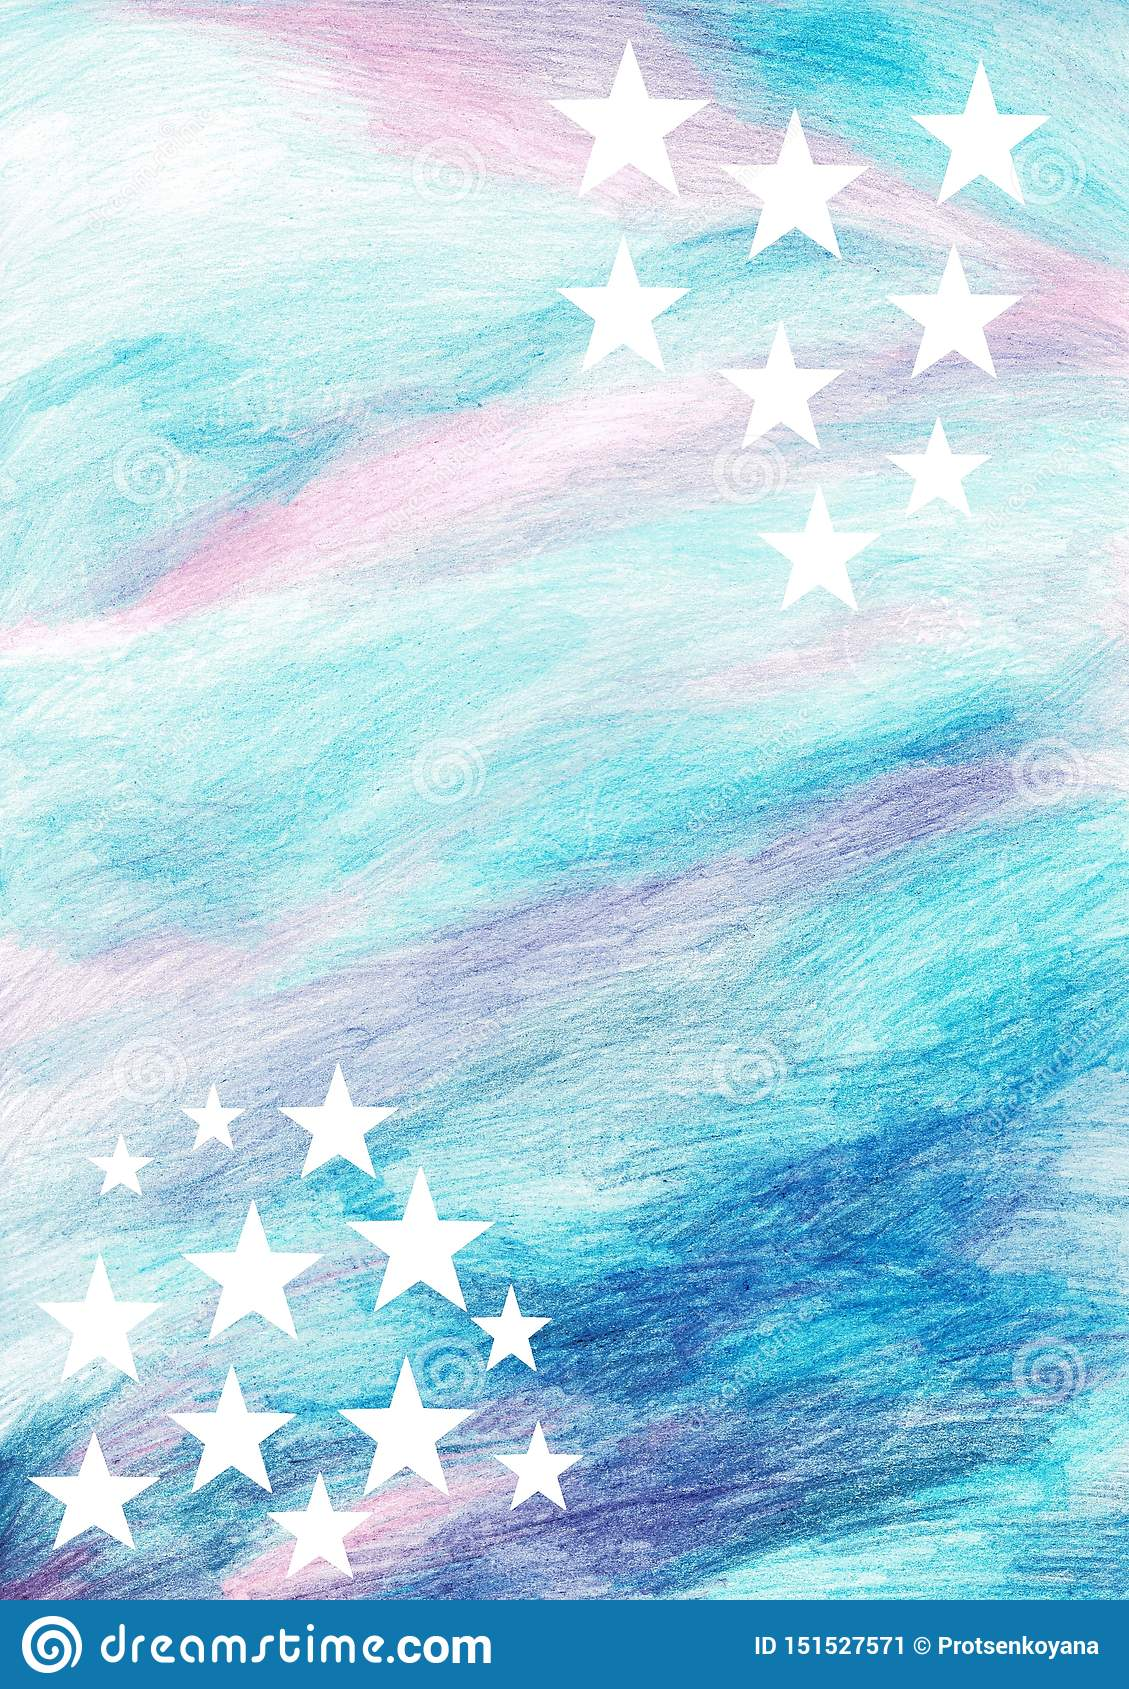 Background Texture Blue Clouds Watercolor Background Blue White Soft Pastel Ink Splatter Texture Stock Illustration Illustration Of Pastel Frame 151527571